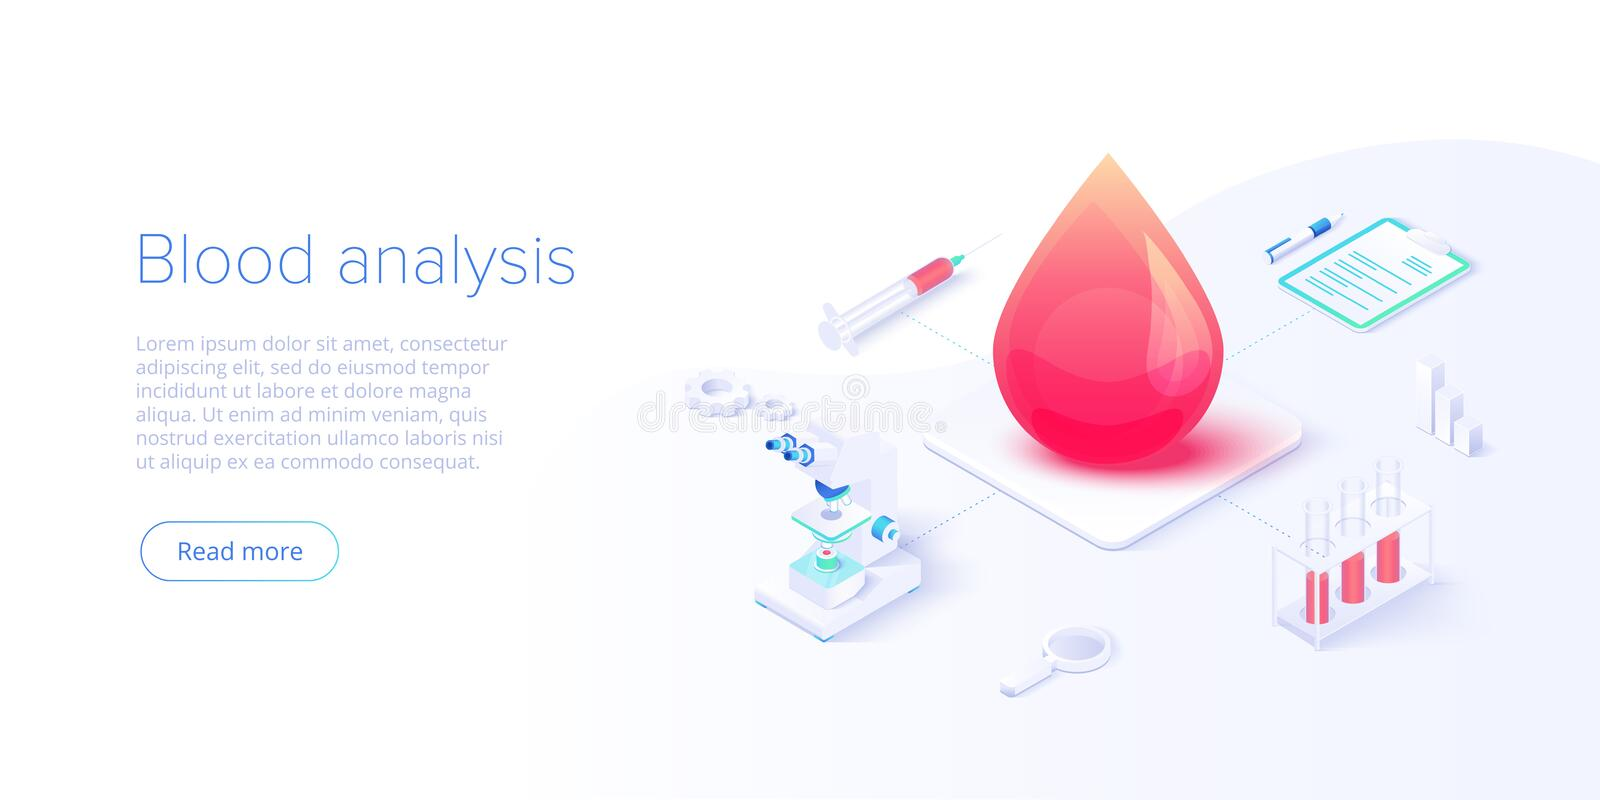 Blood test or analysis in isometric vector illustration. Healthcare concept for clinical laboratory examination. Medical stock illustration